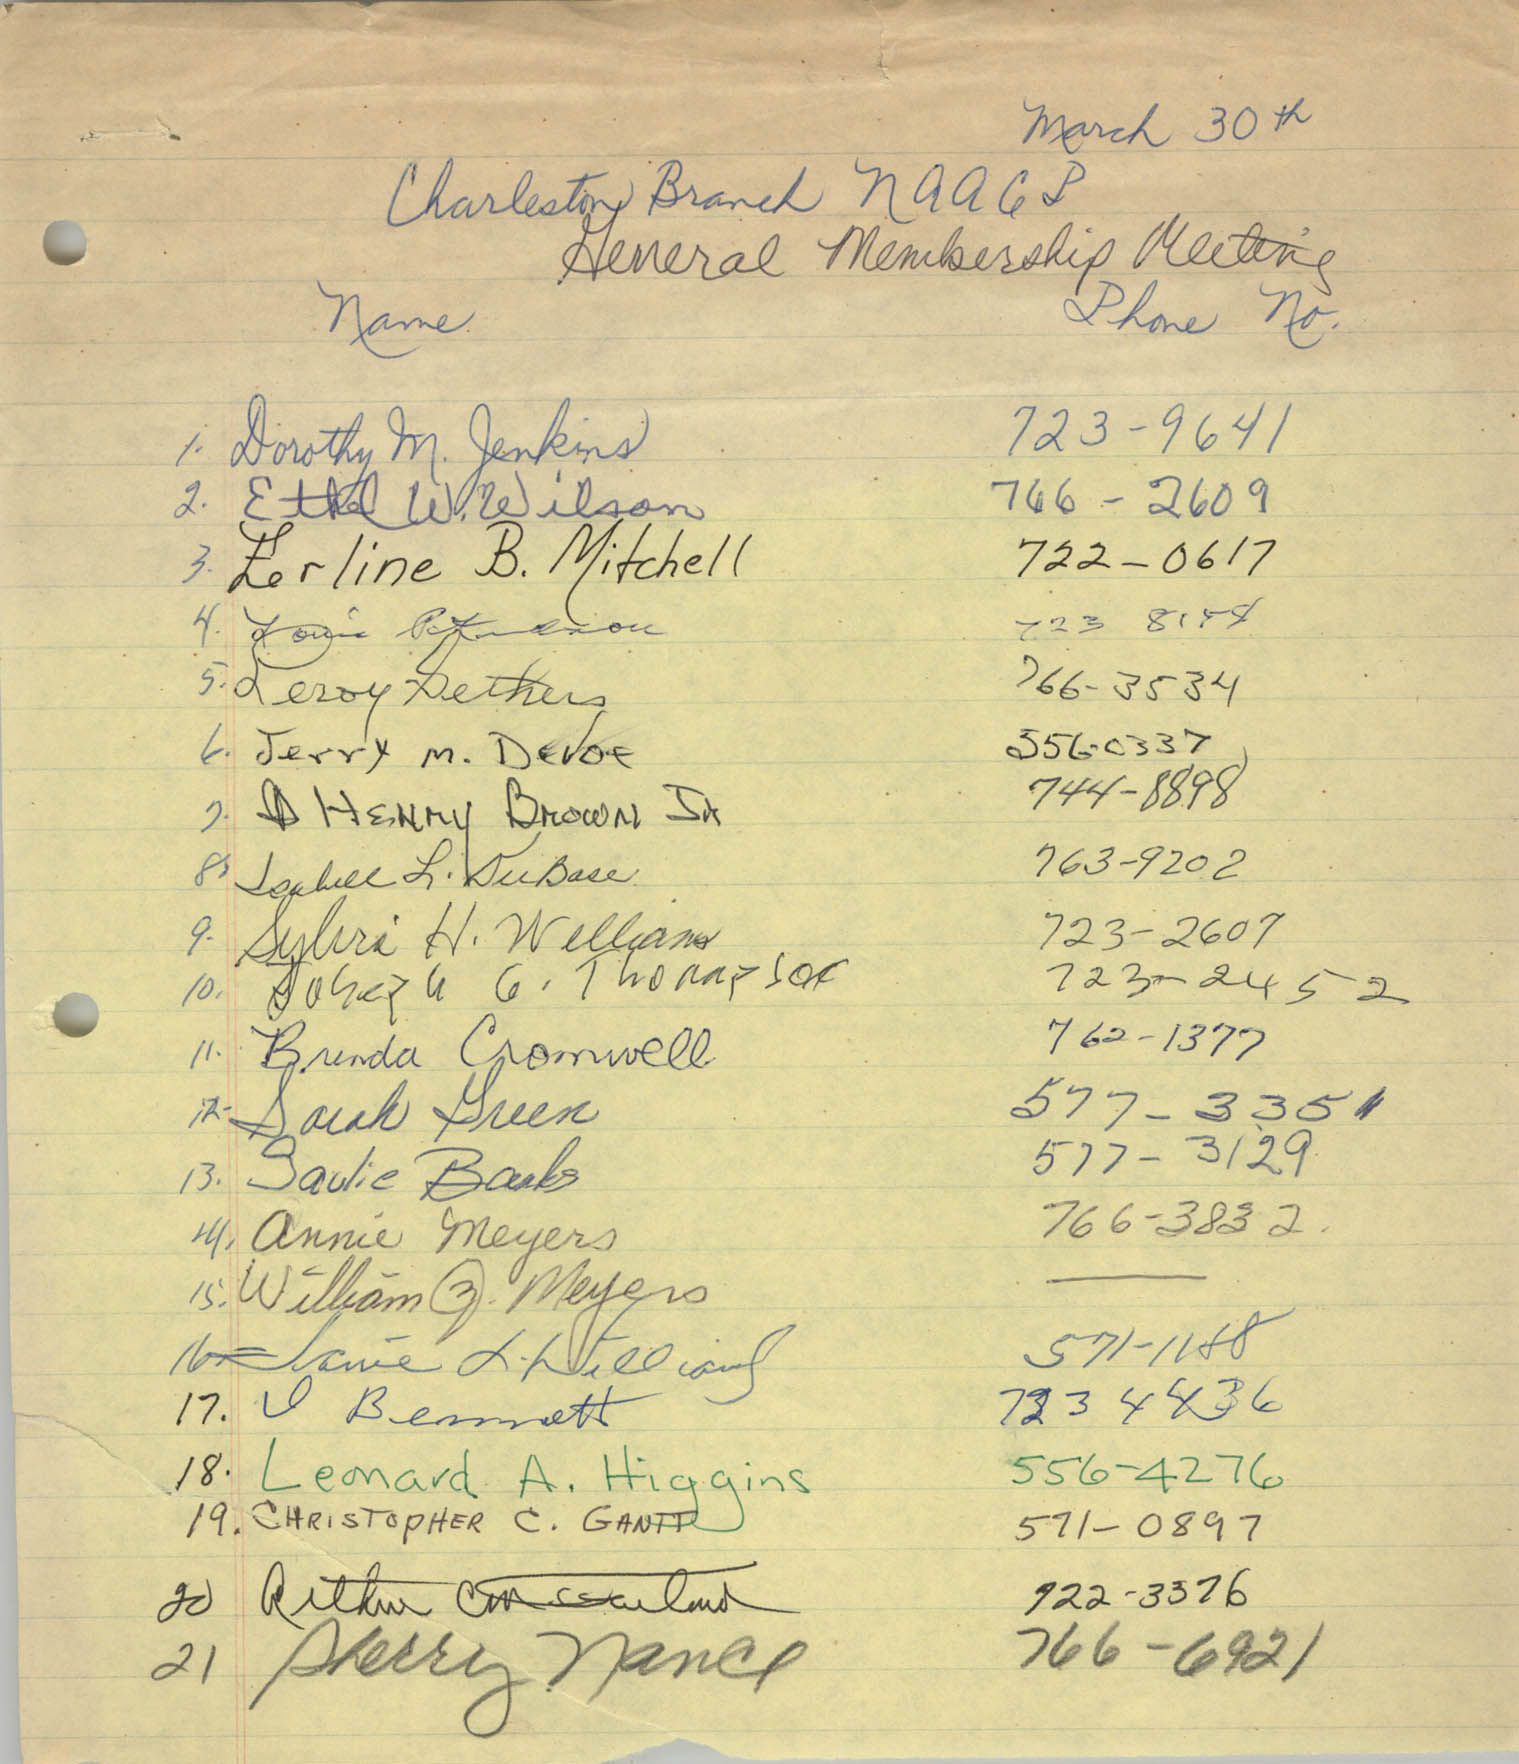 Sign-in Sheet, Charleston Branch of the NAACP, General Membership Meeting, March 30, 1989